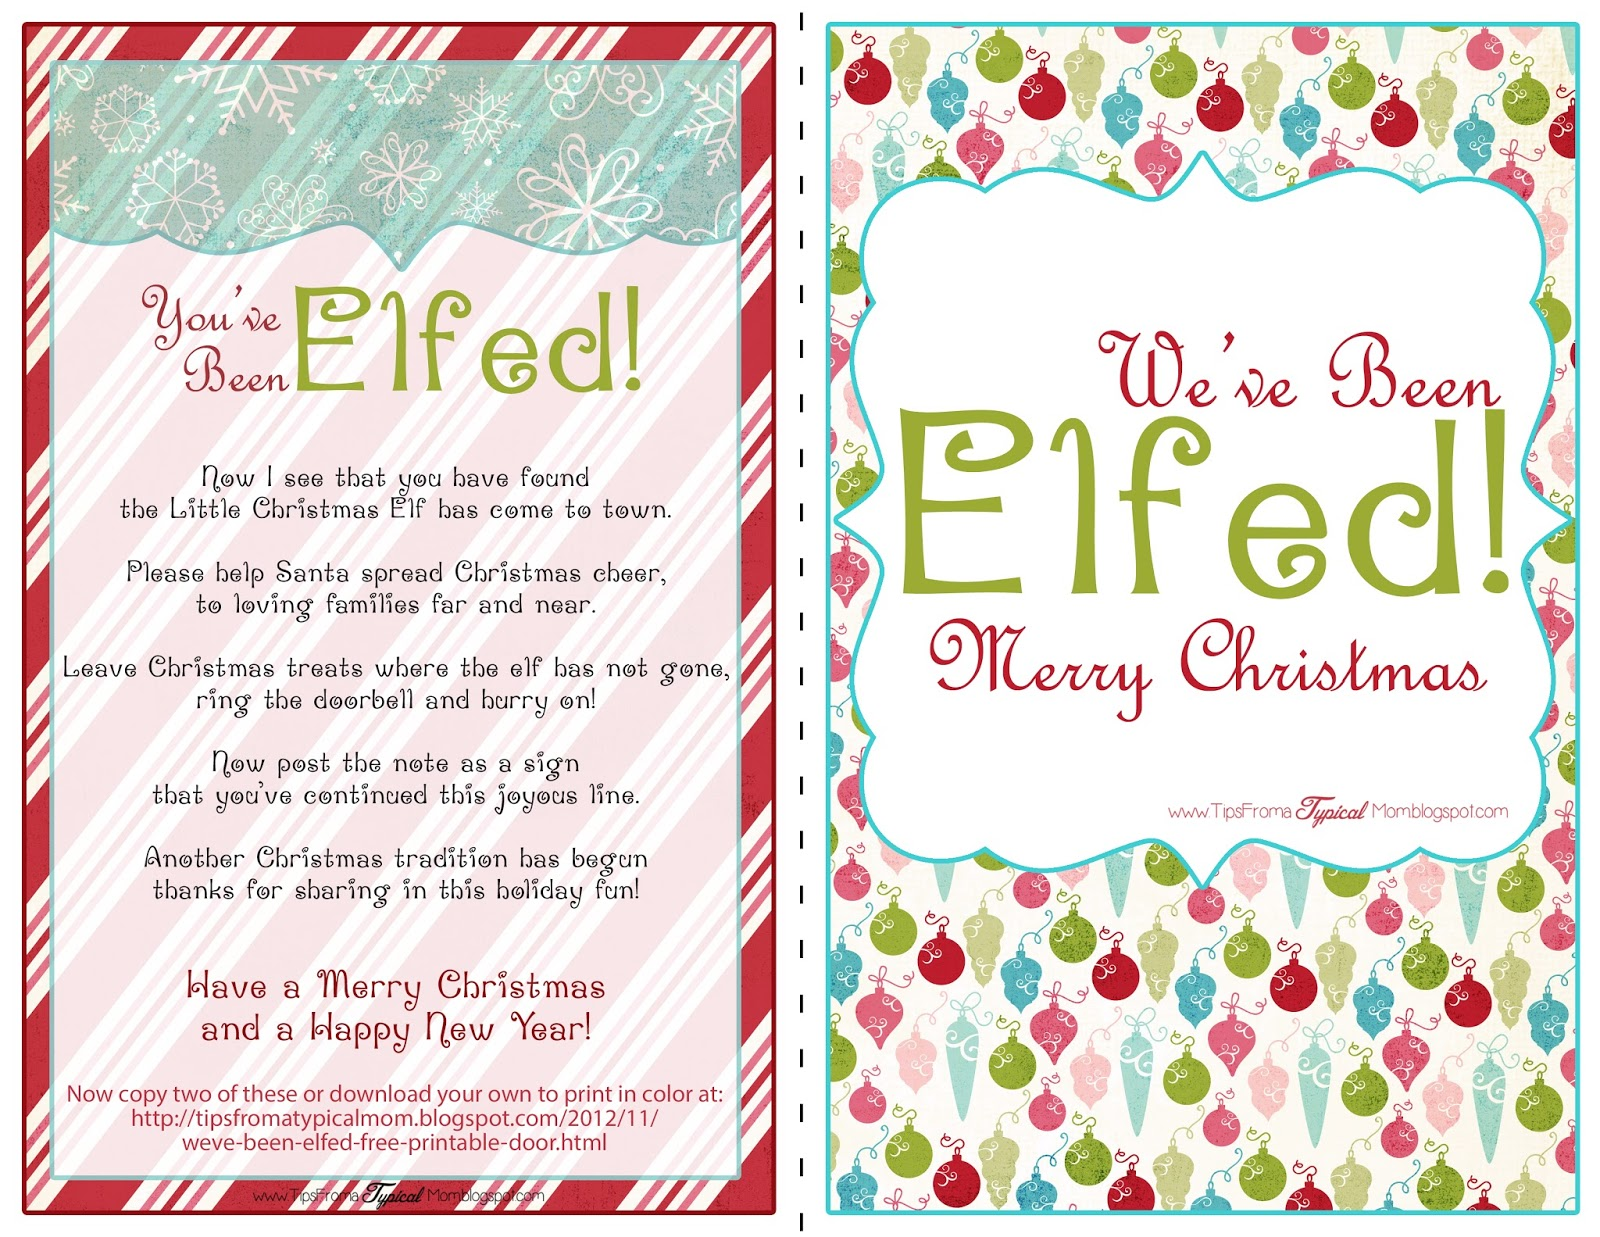 graphic regarding You Ve Been Elfed Printable referred to as Weve Been Elfed! Absolutely free Printable- Doorway Indications and